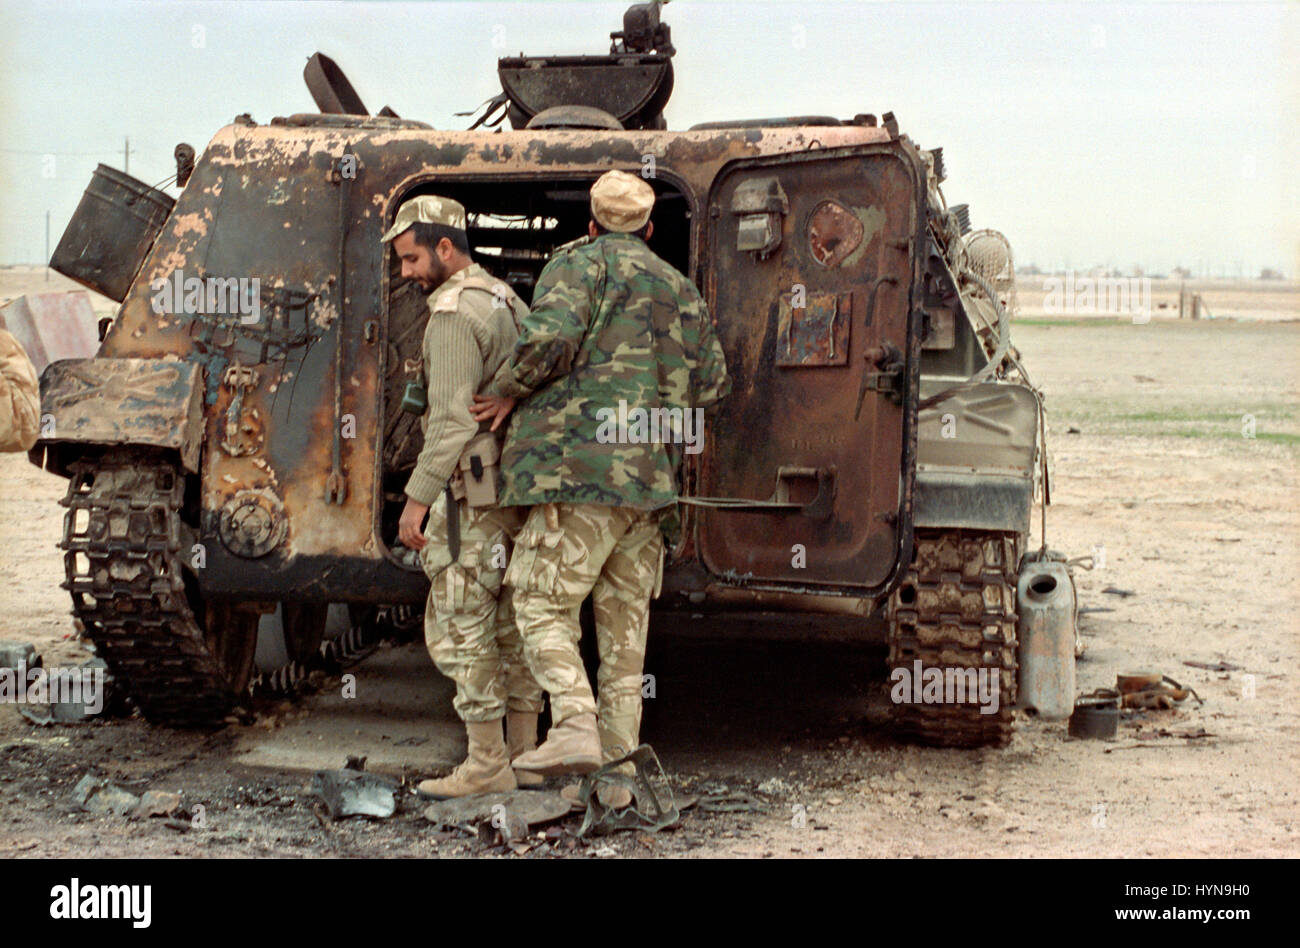 A Qatari soldiers inspect an Iraqi armored personnel carrier destroyed by U.S Aircraft following the Battle of Khafji - Stock Image